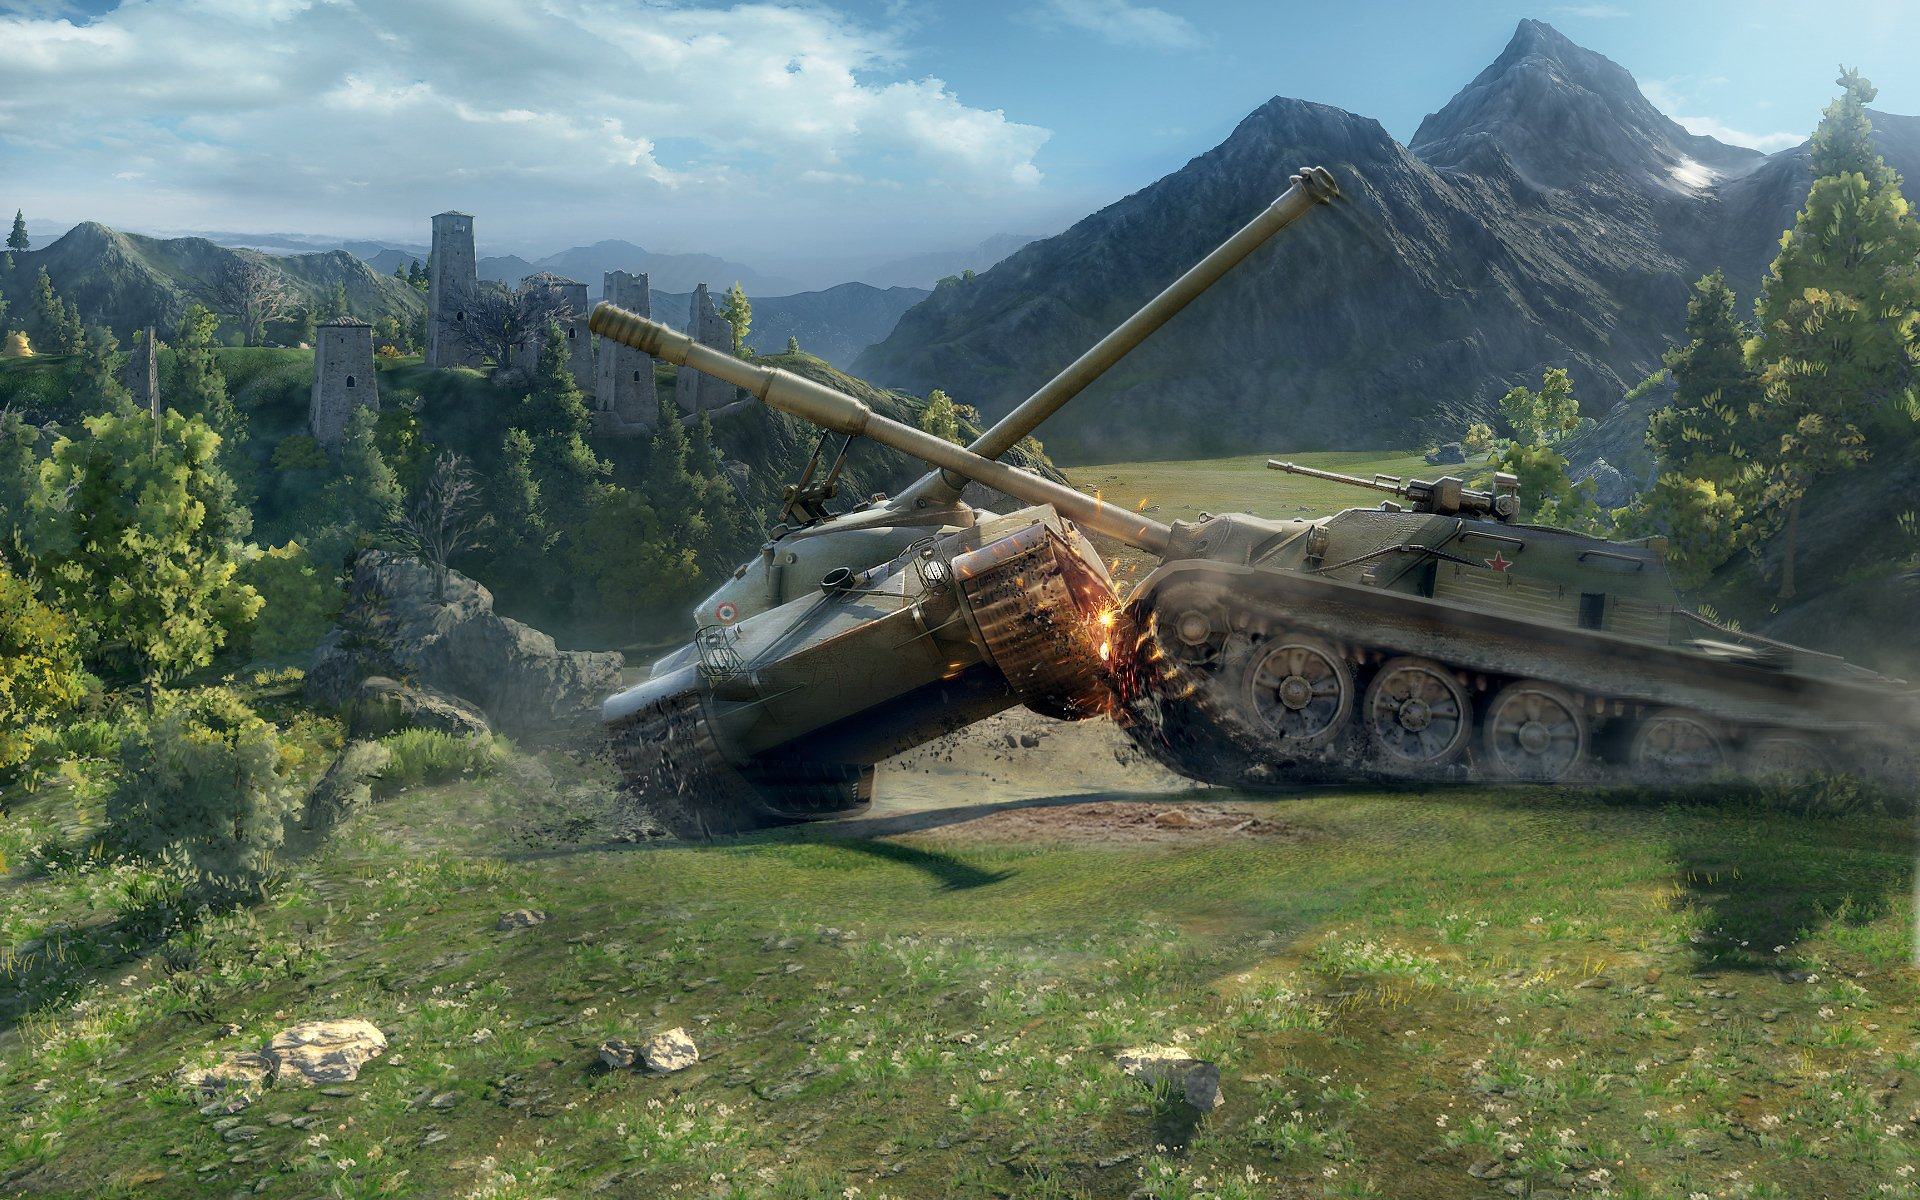 425 World Of Tanks Hd Wallpapers Background Images Wallpaper Abyss